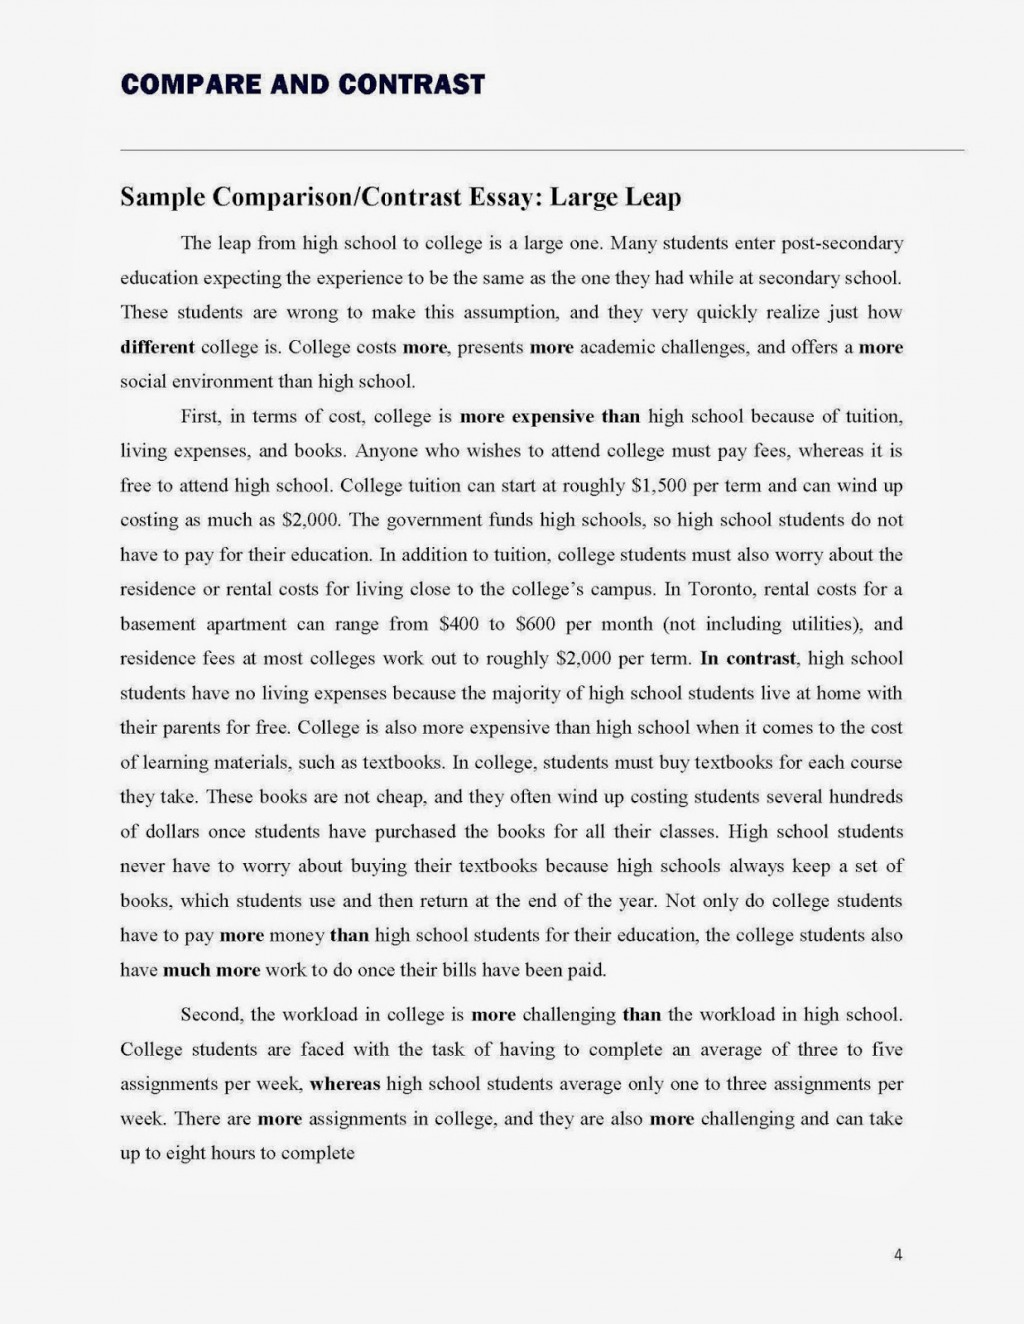 009 Essay Example Peace Compare2band2bcontrast2bessay Page 4 Rare In Simple English Contest 2019 Topics Large